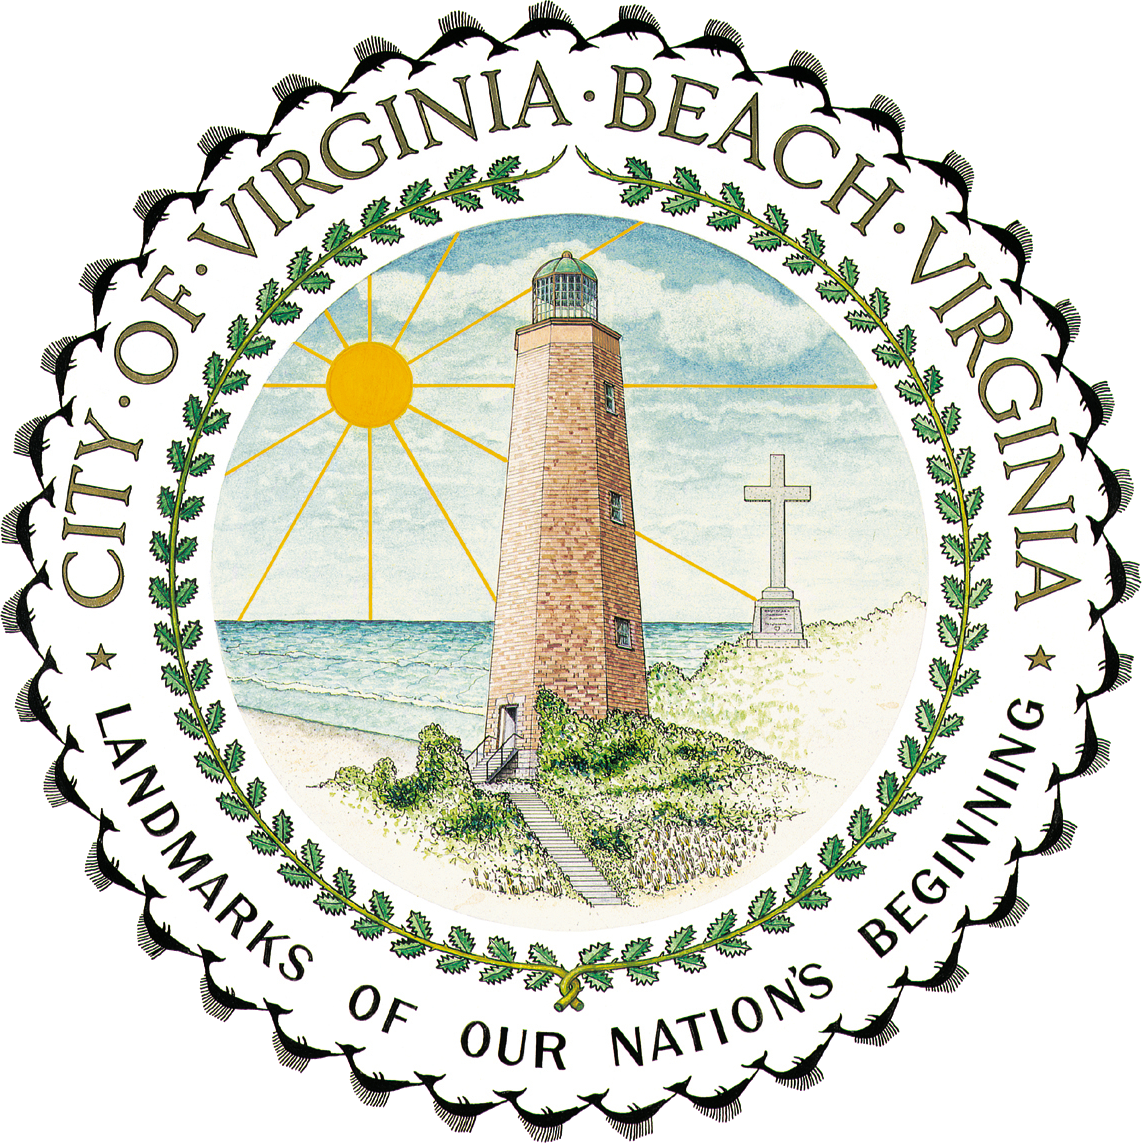 File:Seal of Virginia Beach, Virginia png - Wikimedia Commons